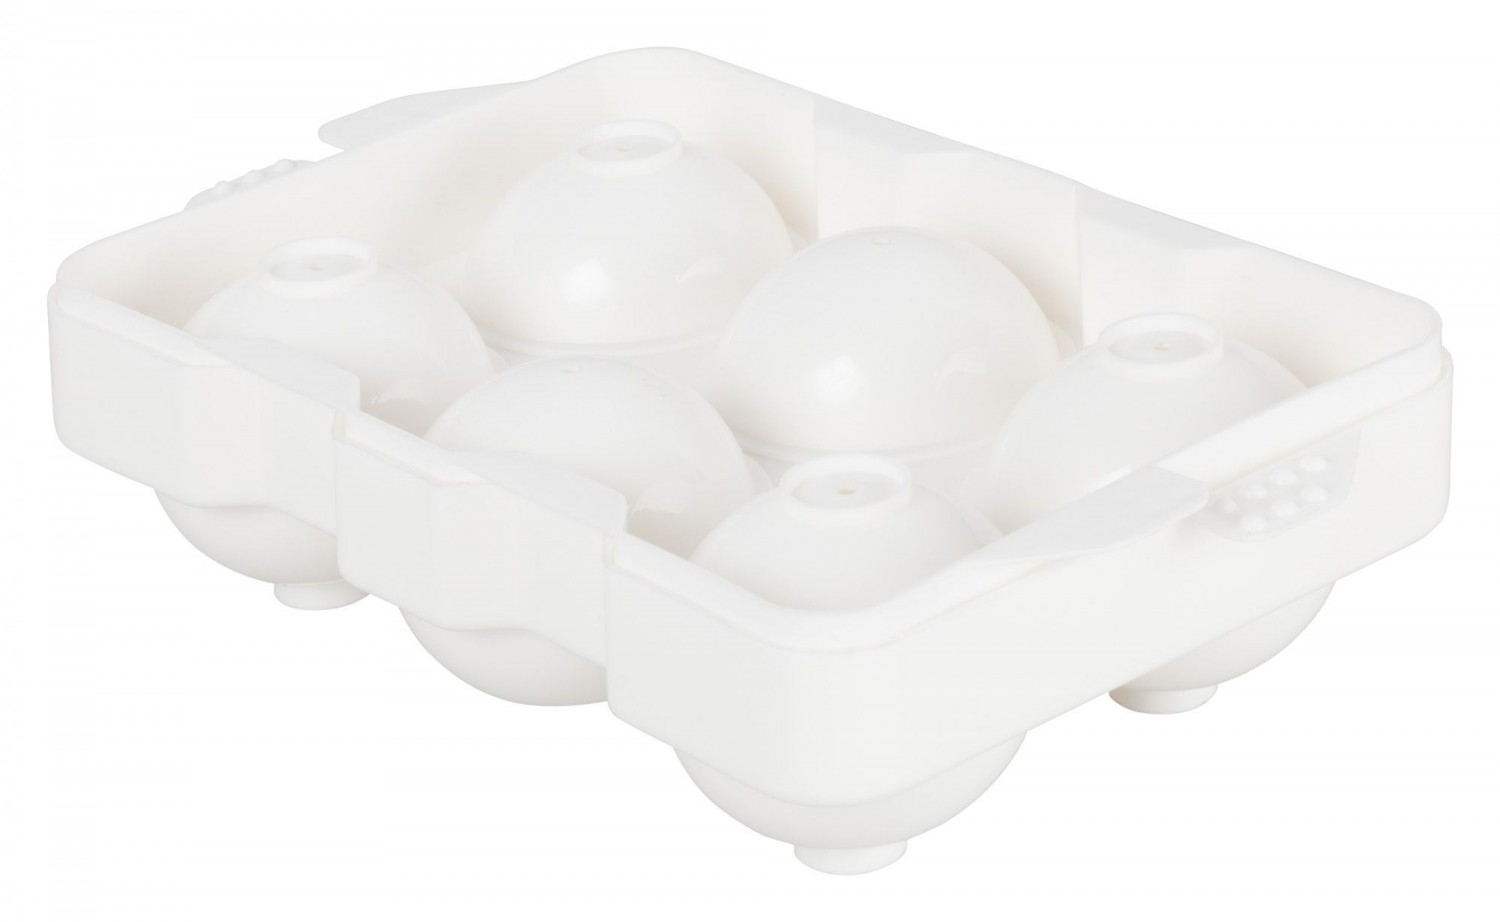 winco iccp 6w 6 cube round ice cube tray. Black Bedroom Furniture Sets. Home Design Ideas